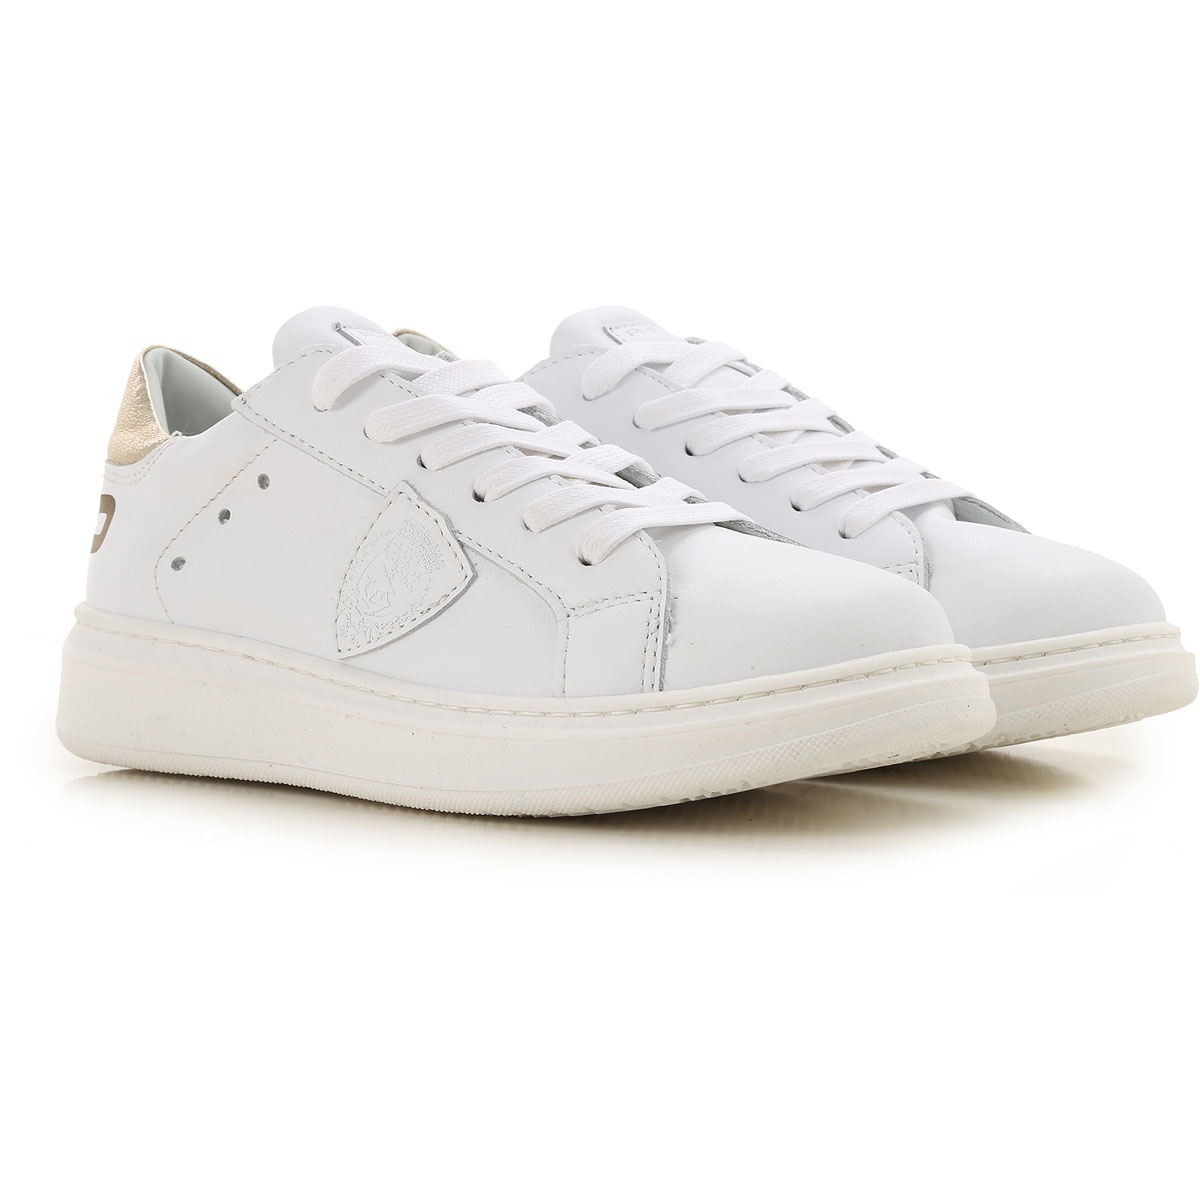 Philippe Model Kids Shoes for Girls On Sale in Outlet, White, Leather, 2019, 32 33